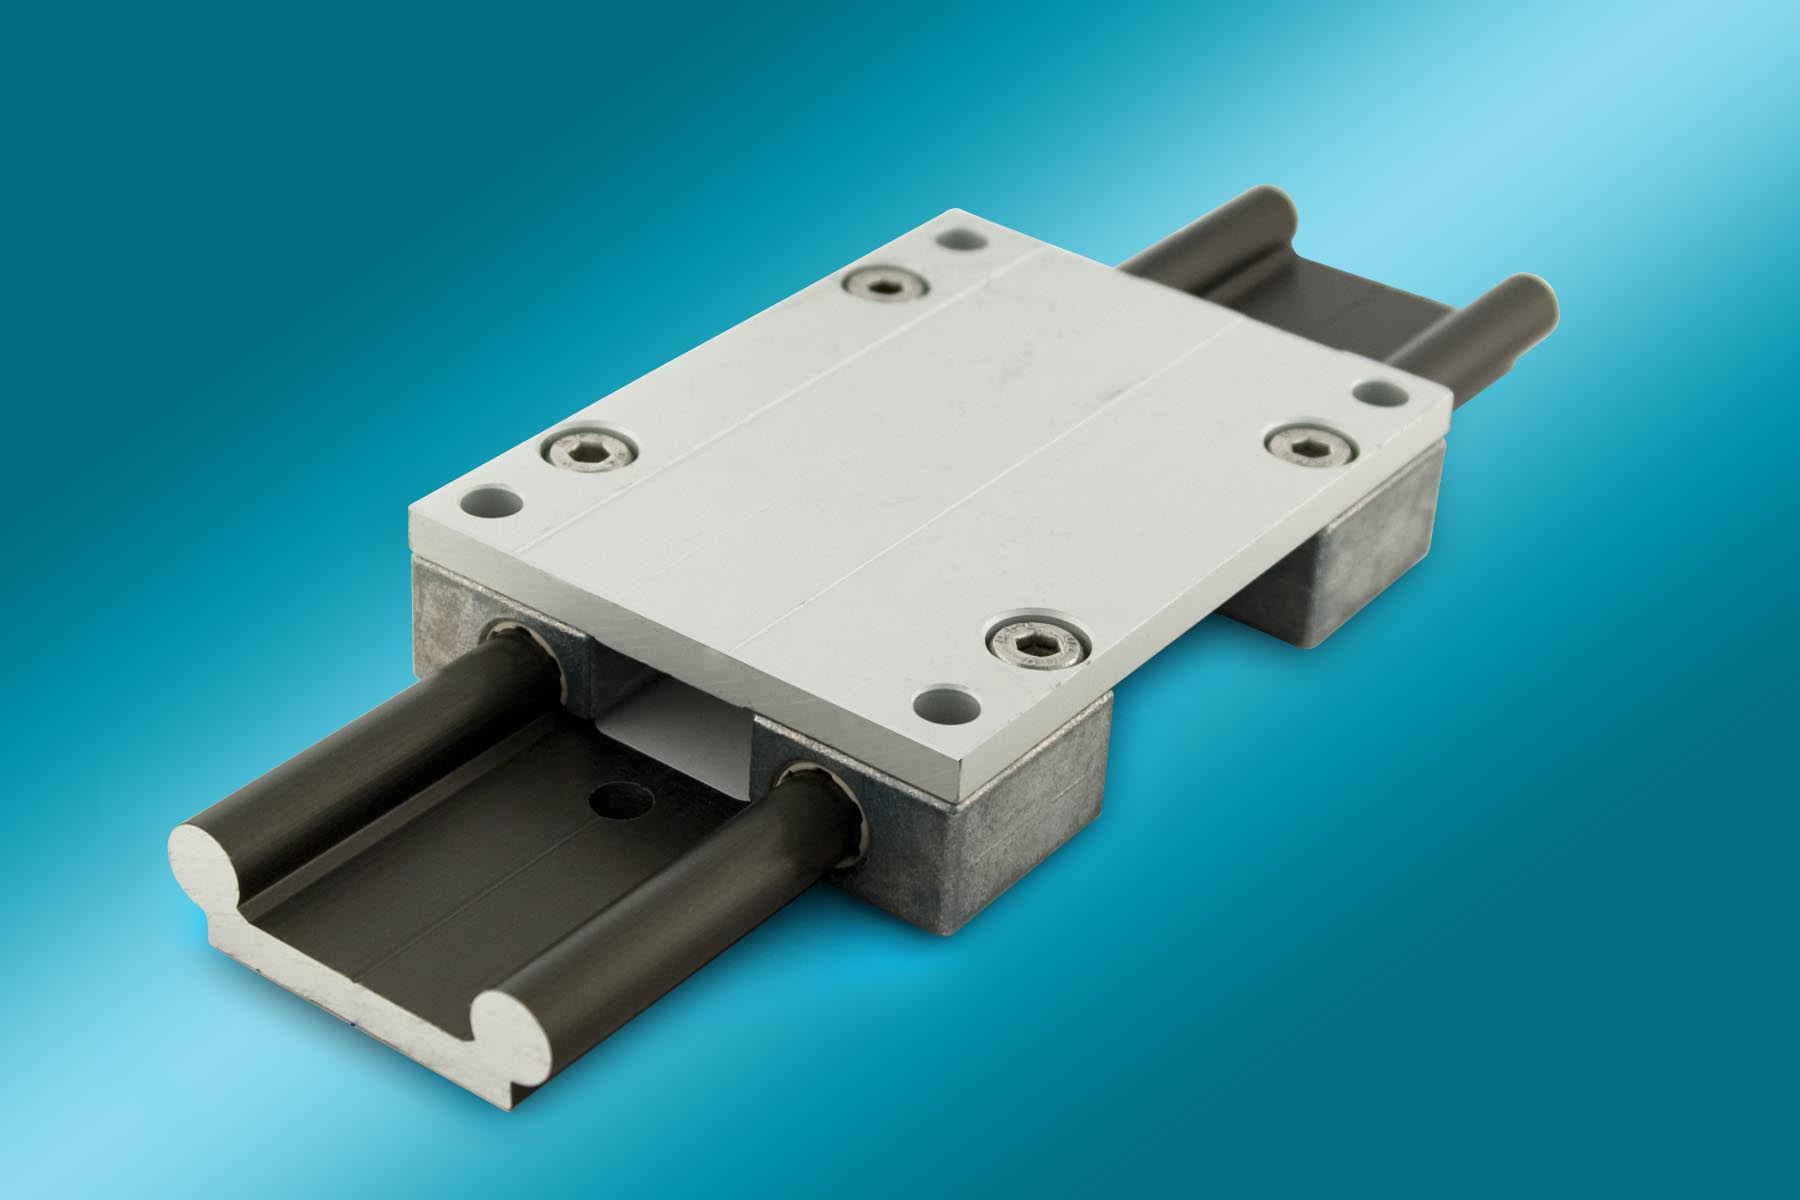 Linear Rail Brake : New linear guide rail system from sterling instrument is